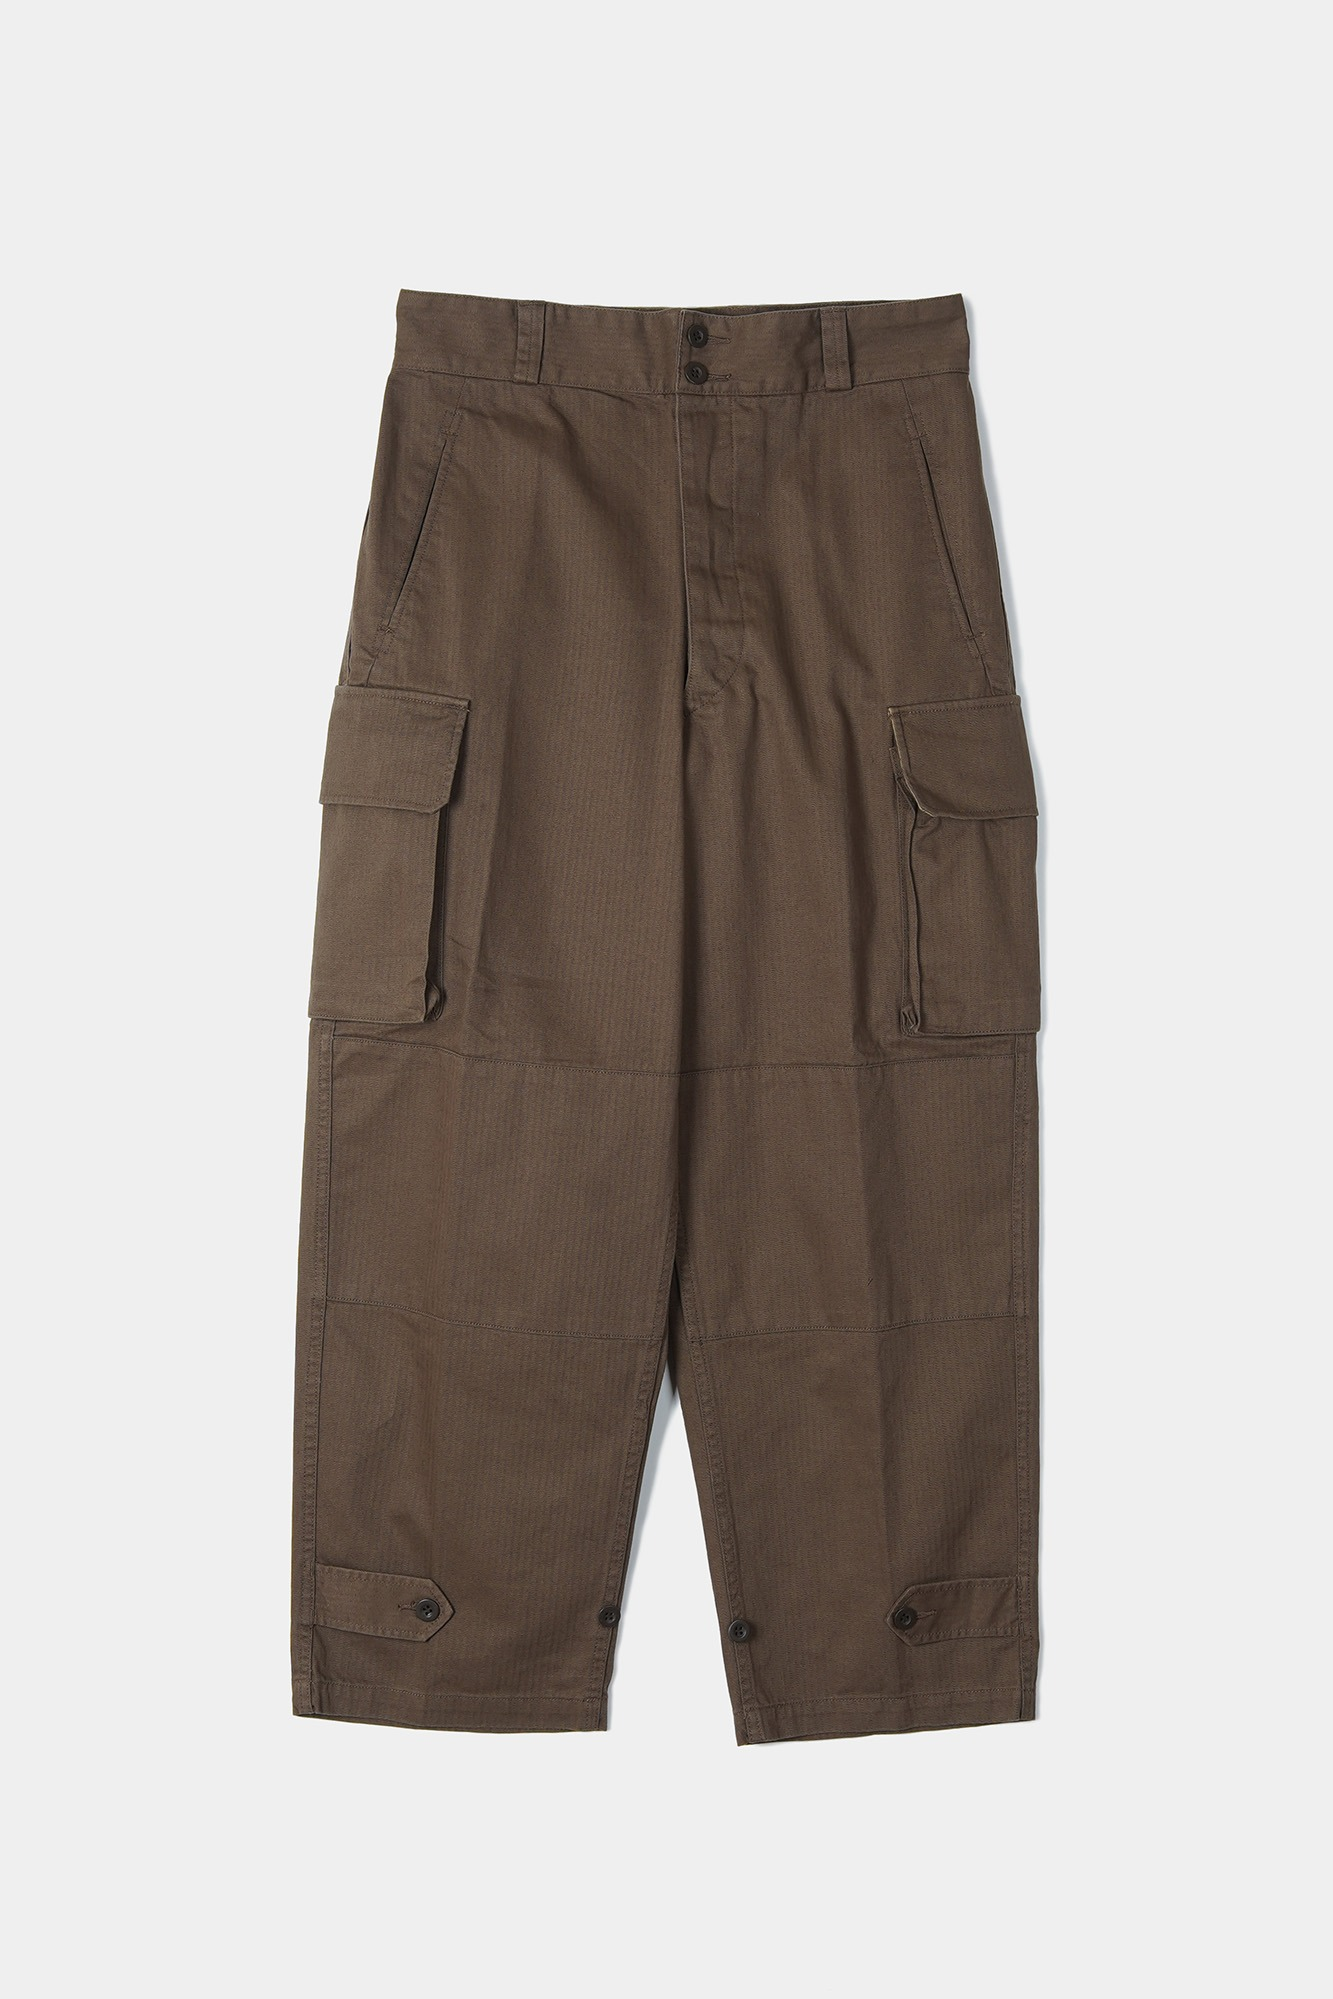 "YMCL KY French Military M47 Field Pants ""Brown"""